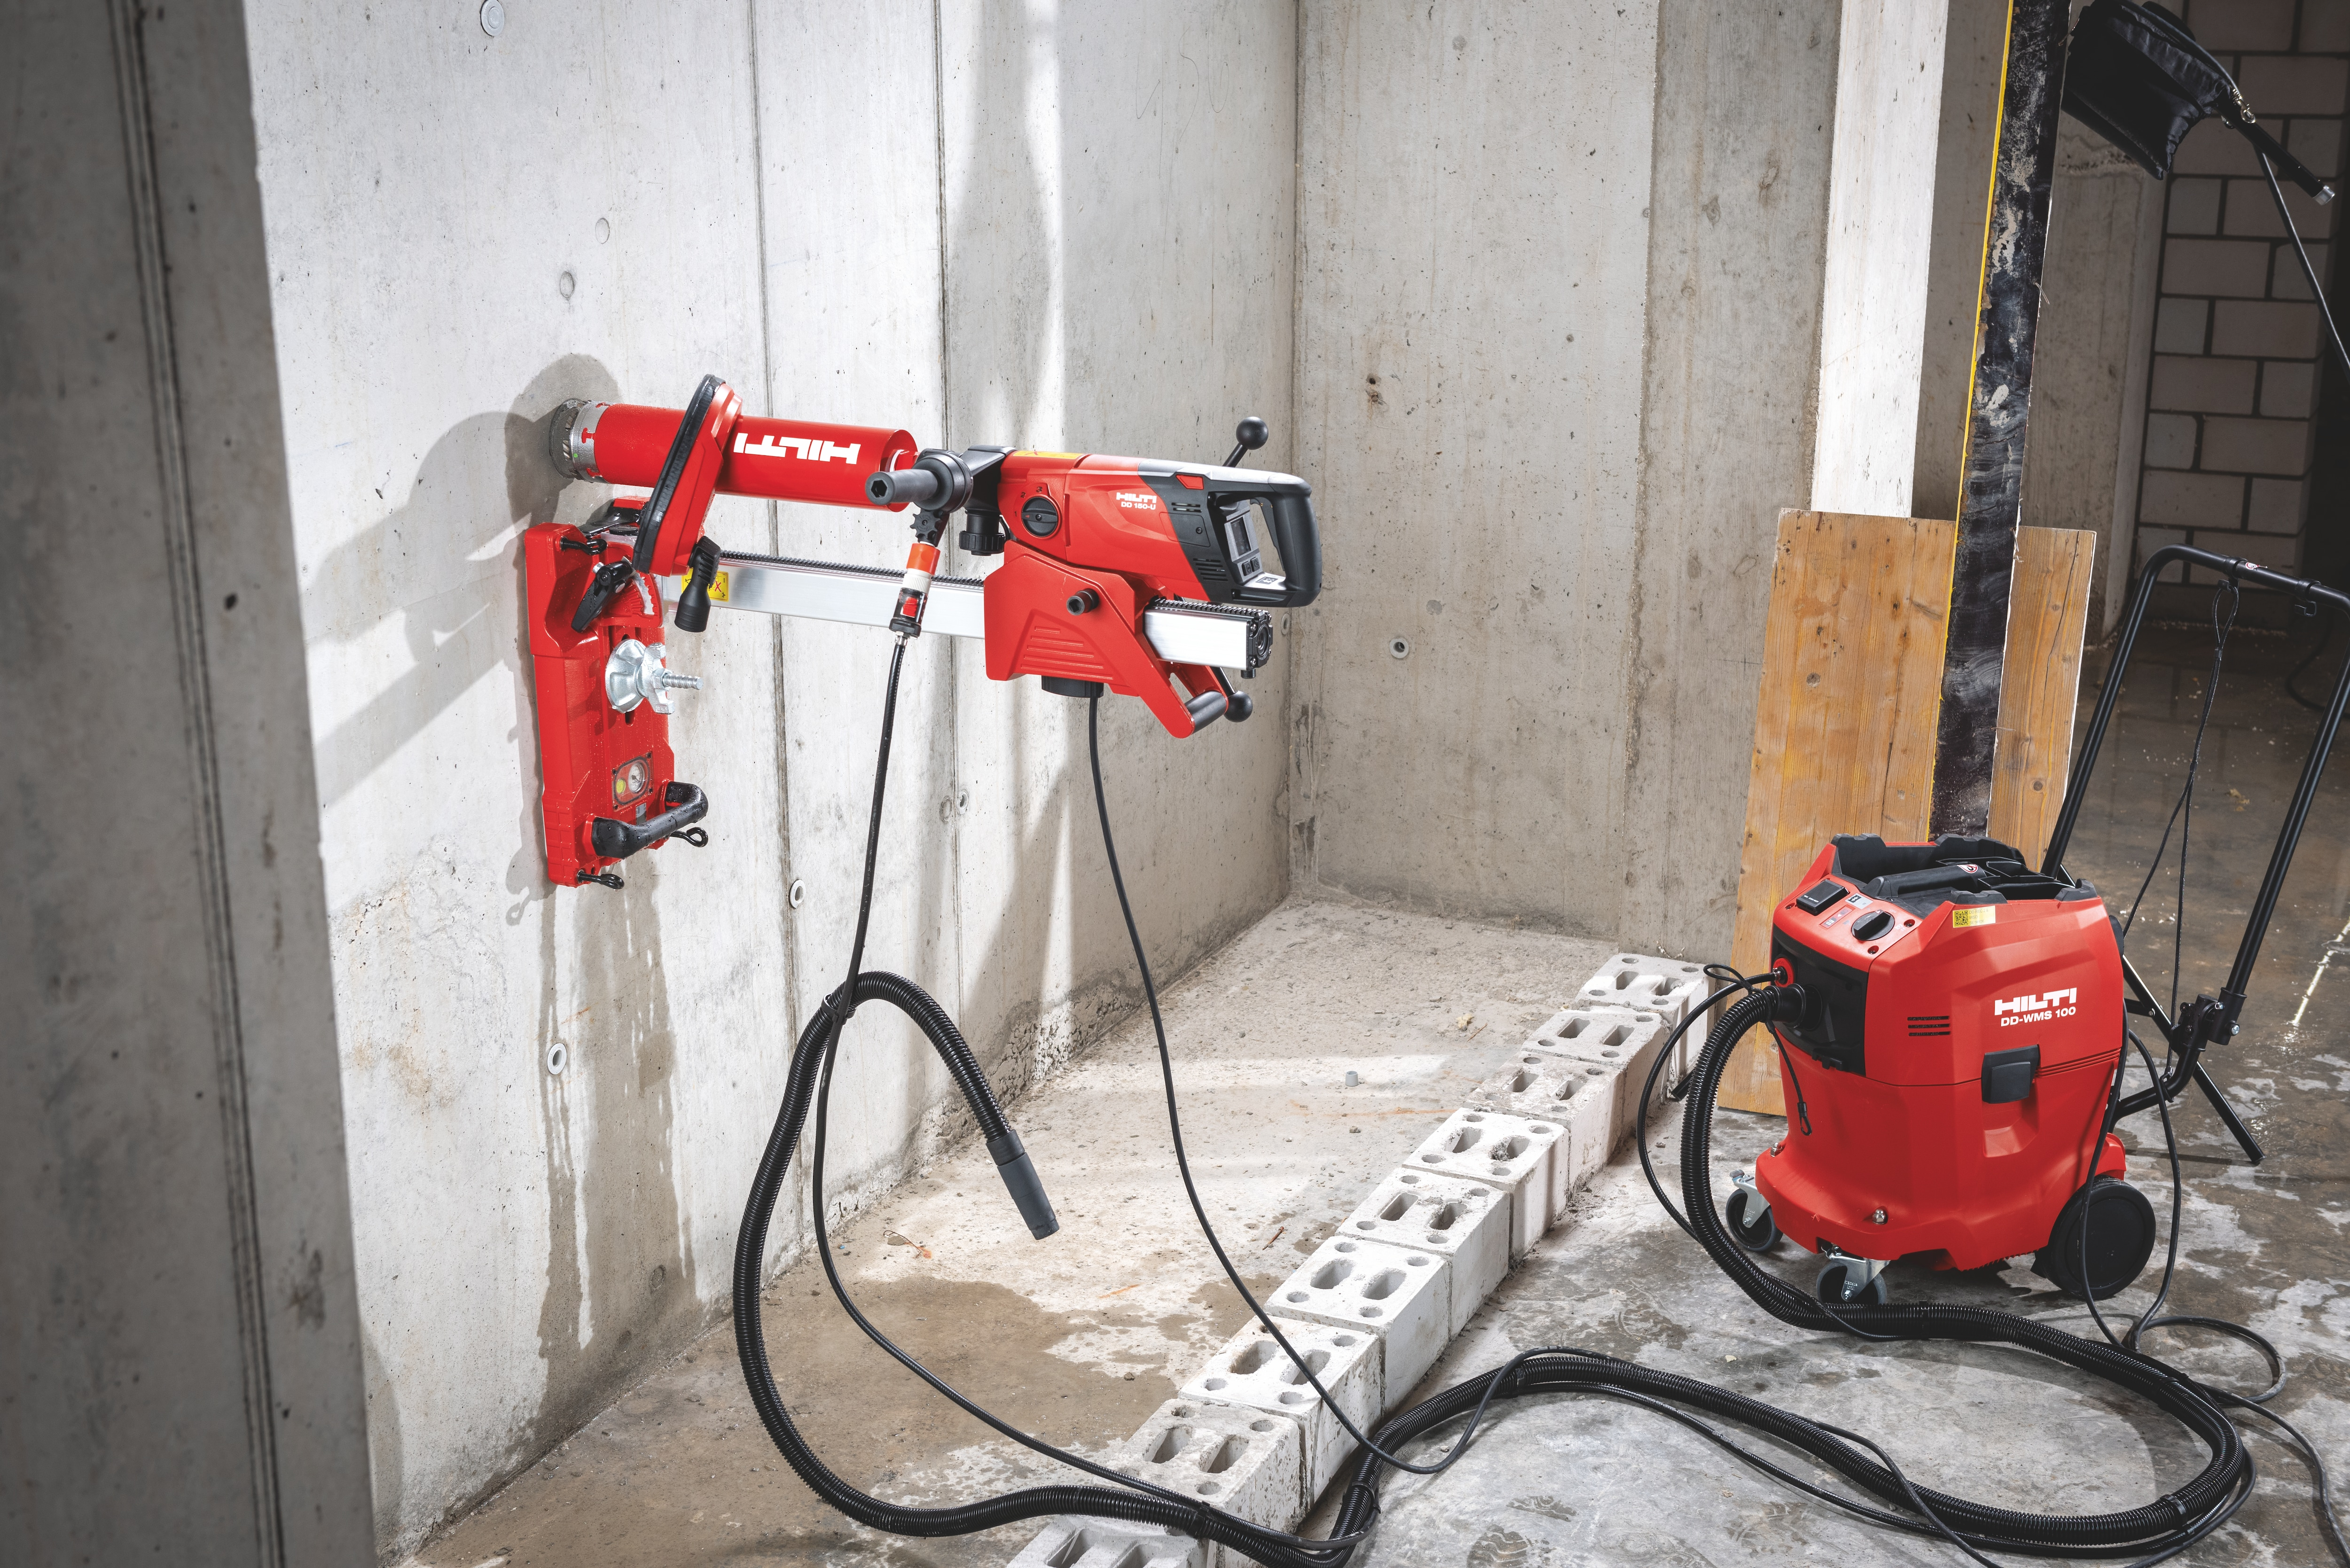 Hilti diamond drilling solutions